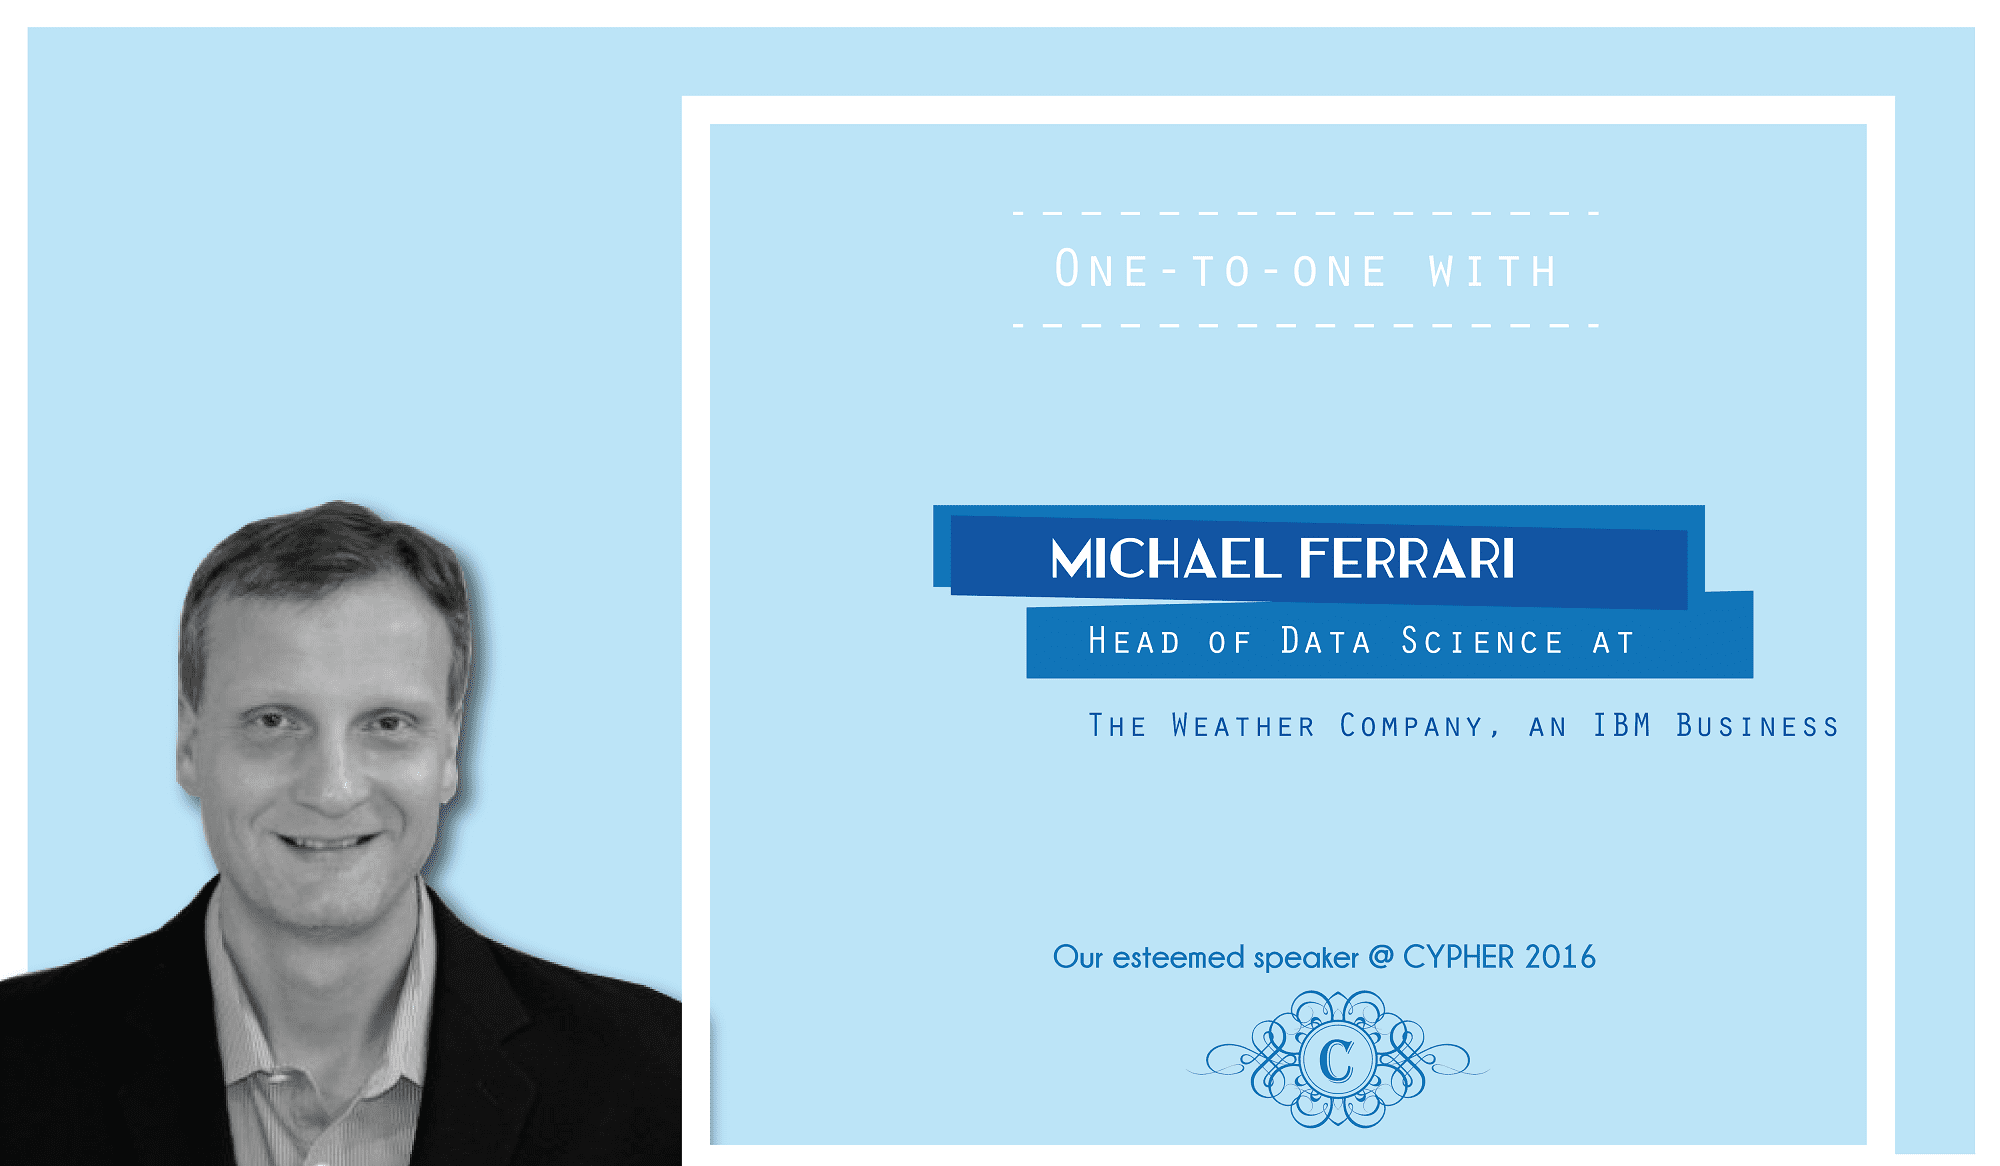 Interview with Michael Ferrari, Head of Data Science, The Weather